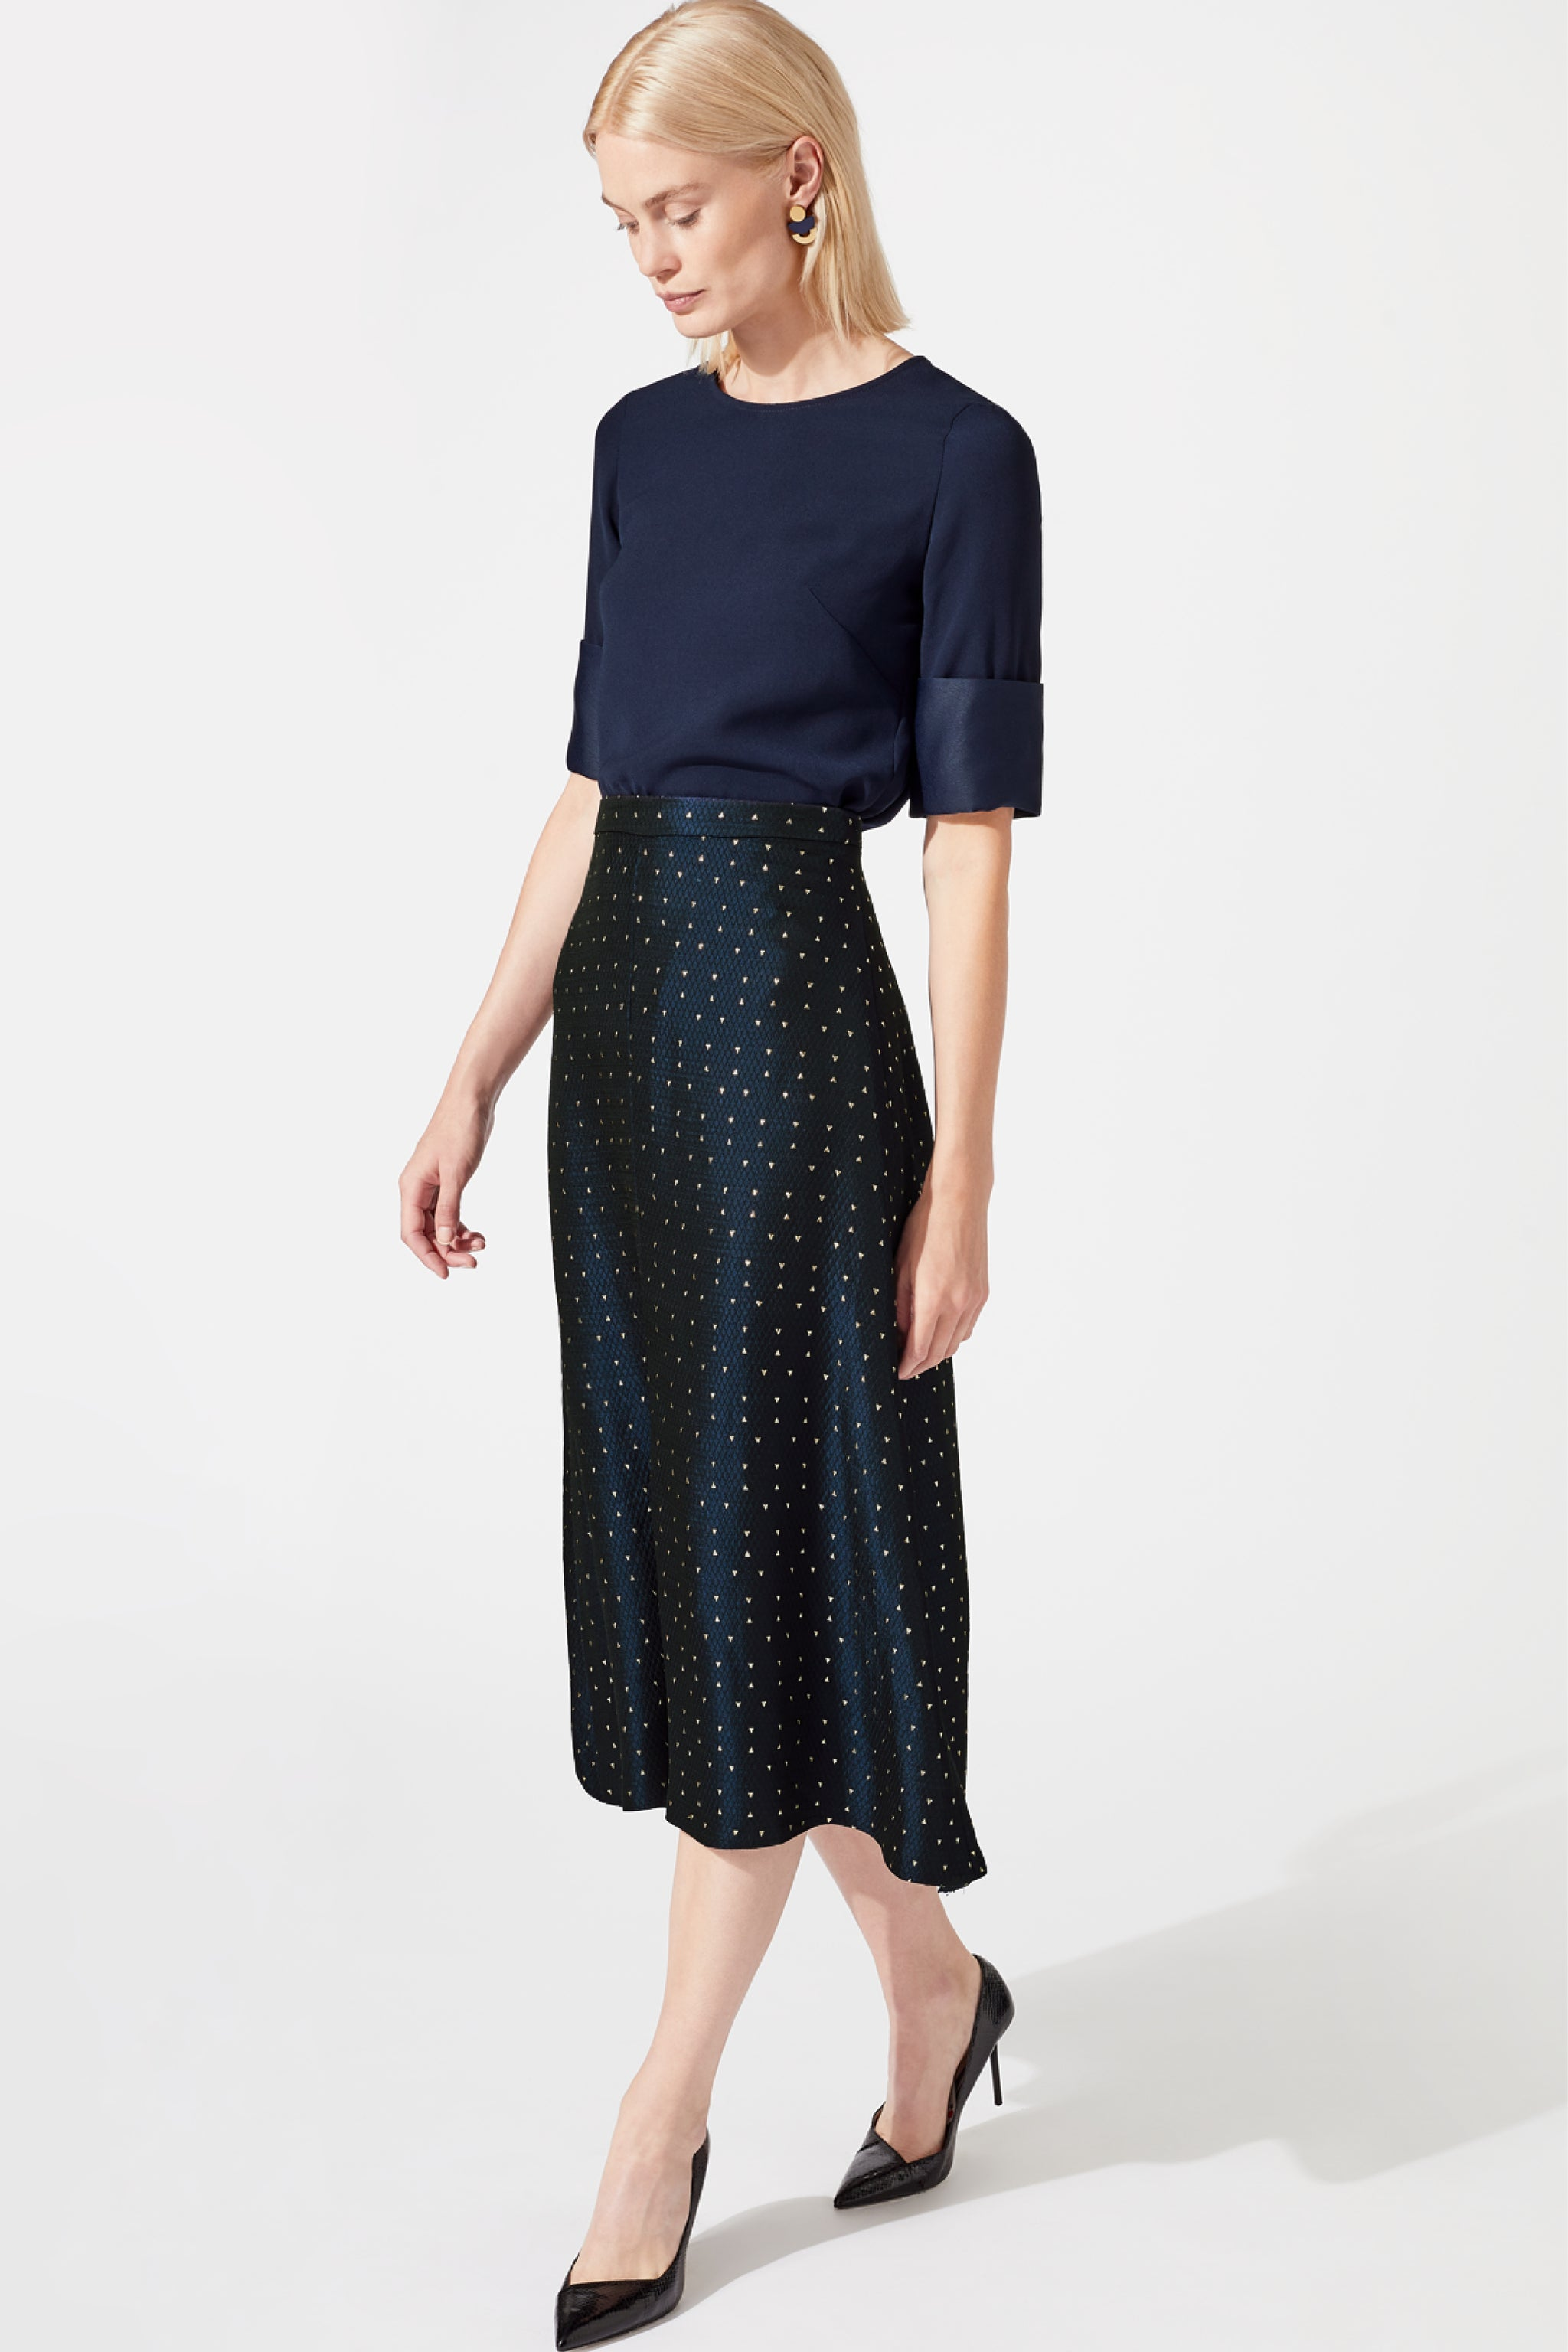 Penrith Navy Metallic Jacquard Skirt